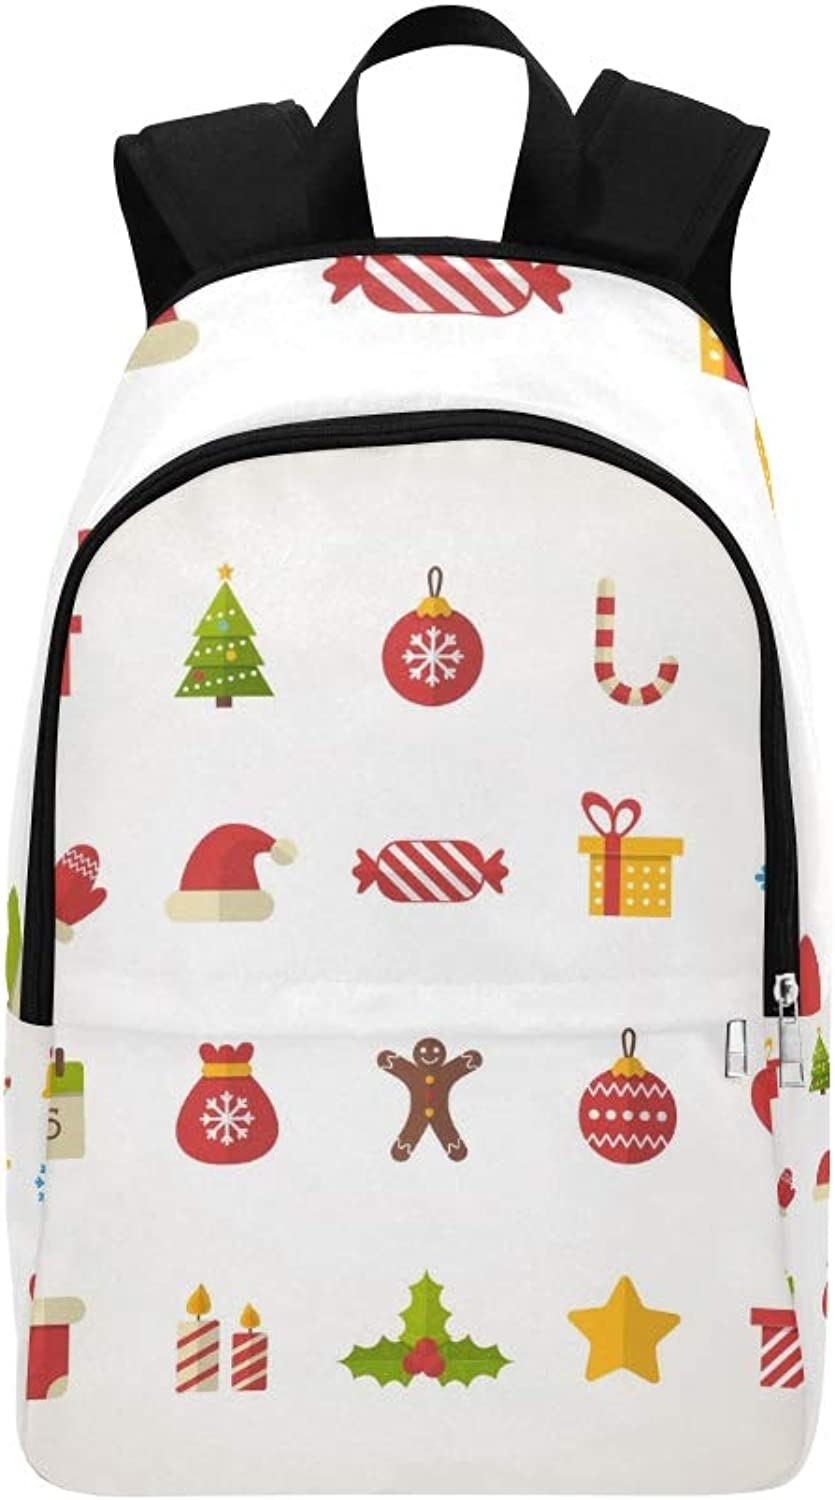 Set Flat Christmas Icons Casual Daypack Travel Bag College School Backpack for Mens and Women